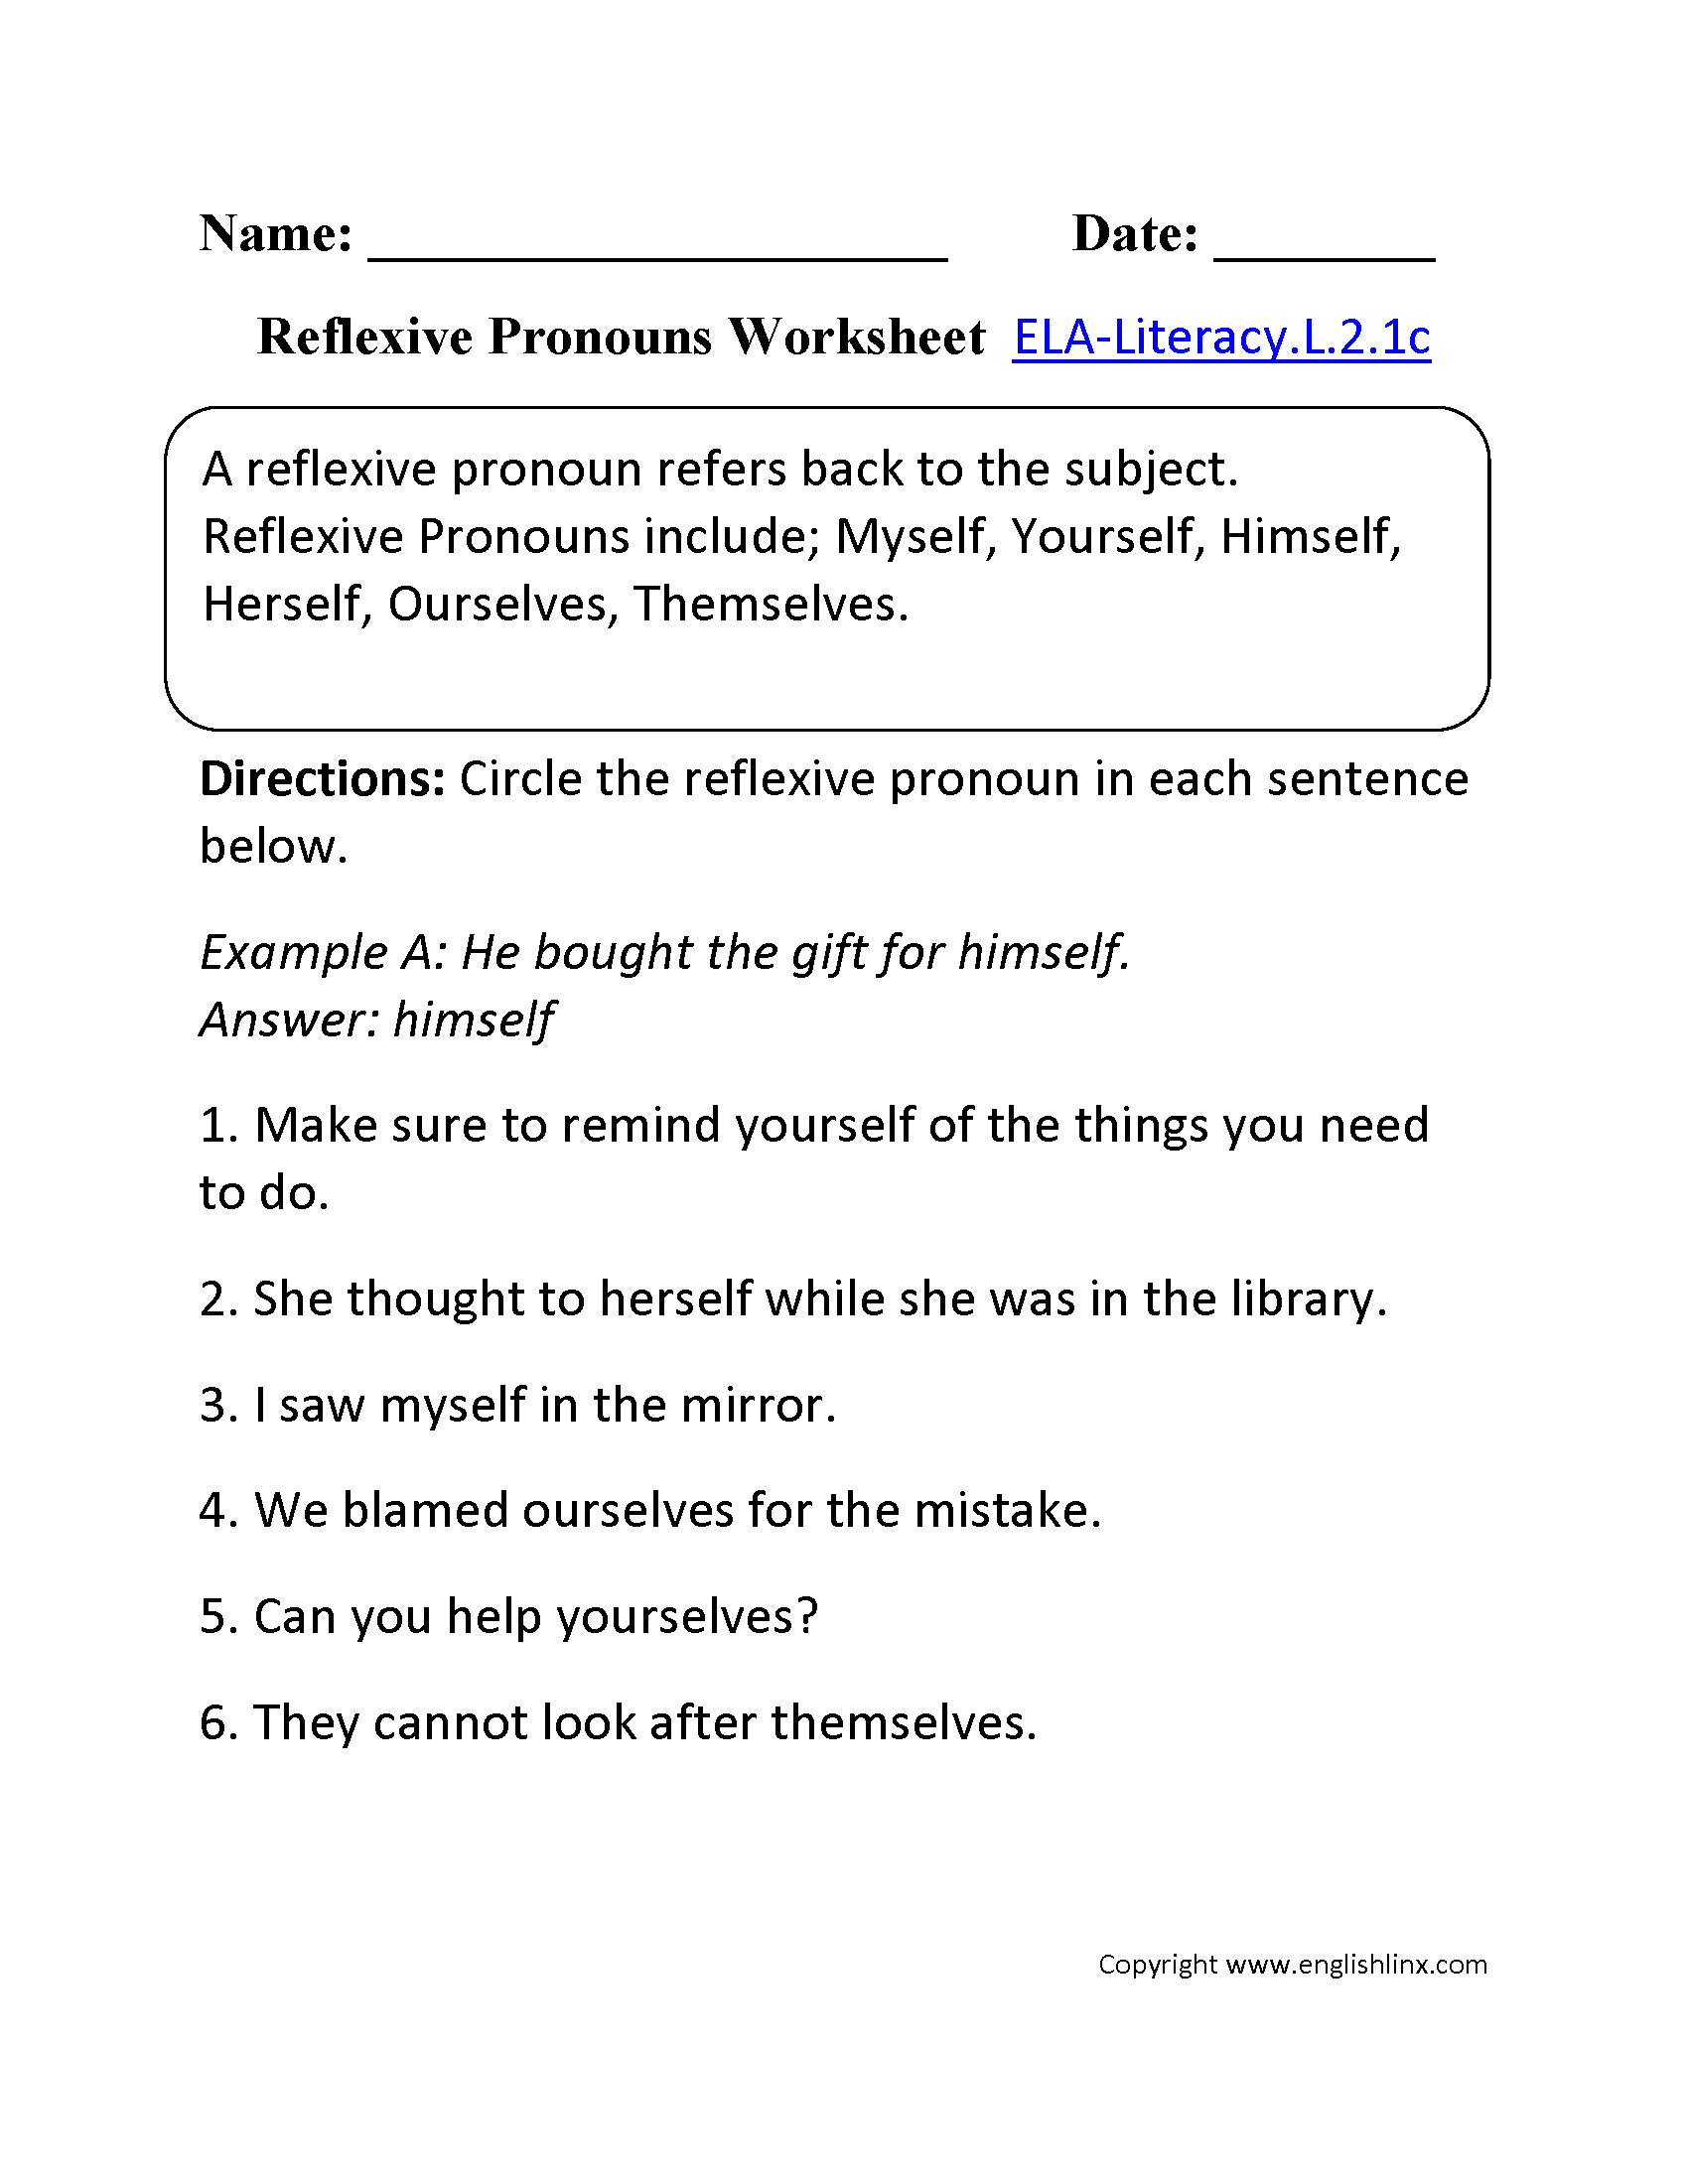 worksheet Common Core Writing Worksheets 2nd grade common core language worksheets reflexive pronouns worksheet 2 ela literacy l 1c worksheet